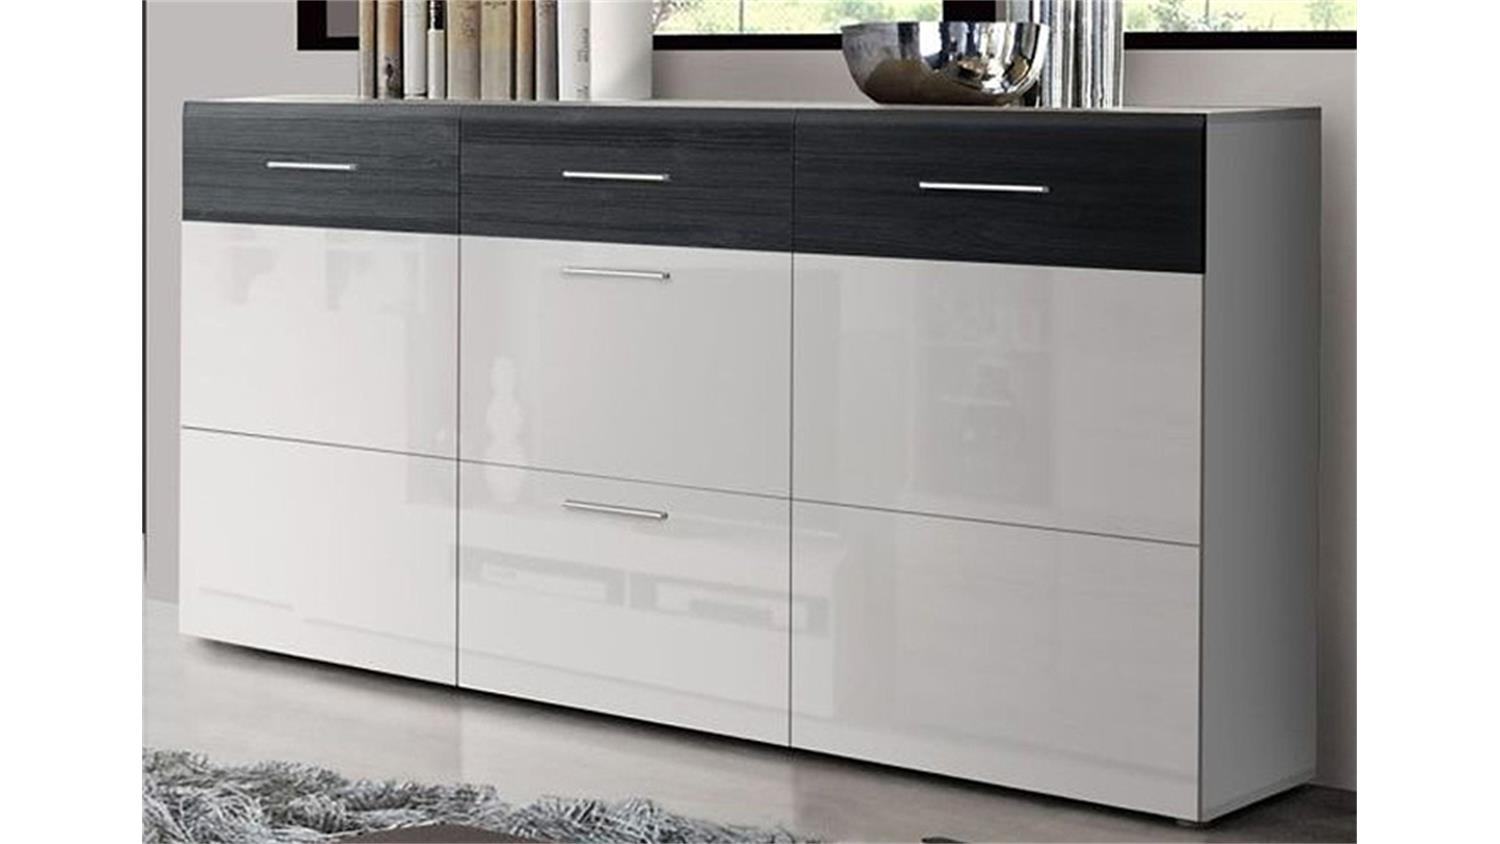 kommode hochglanz schwarz weiss das beste aus wohndesign. Black Bedroom Furniture Sets. Home Design Ideas